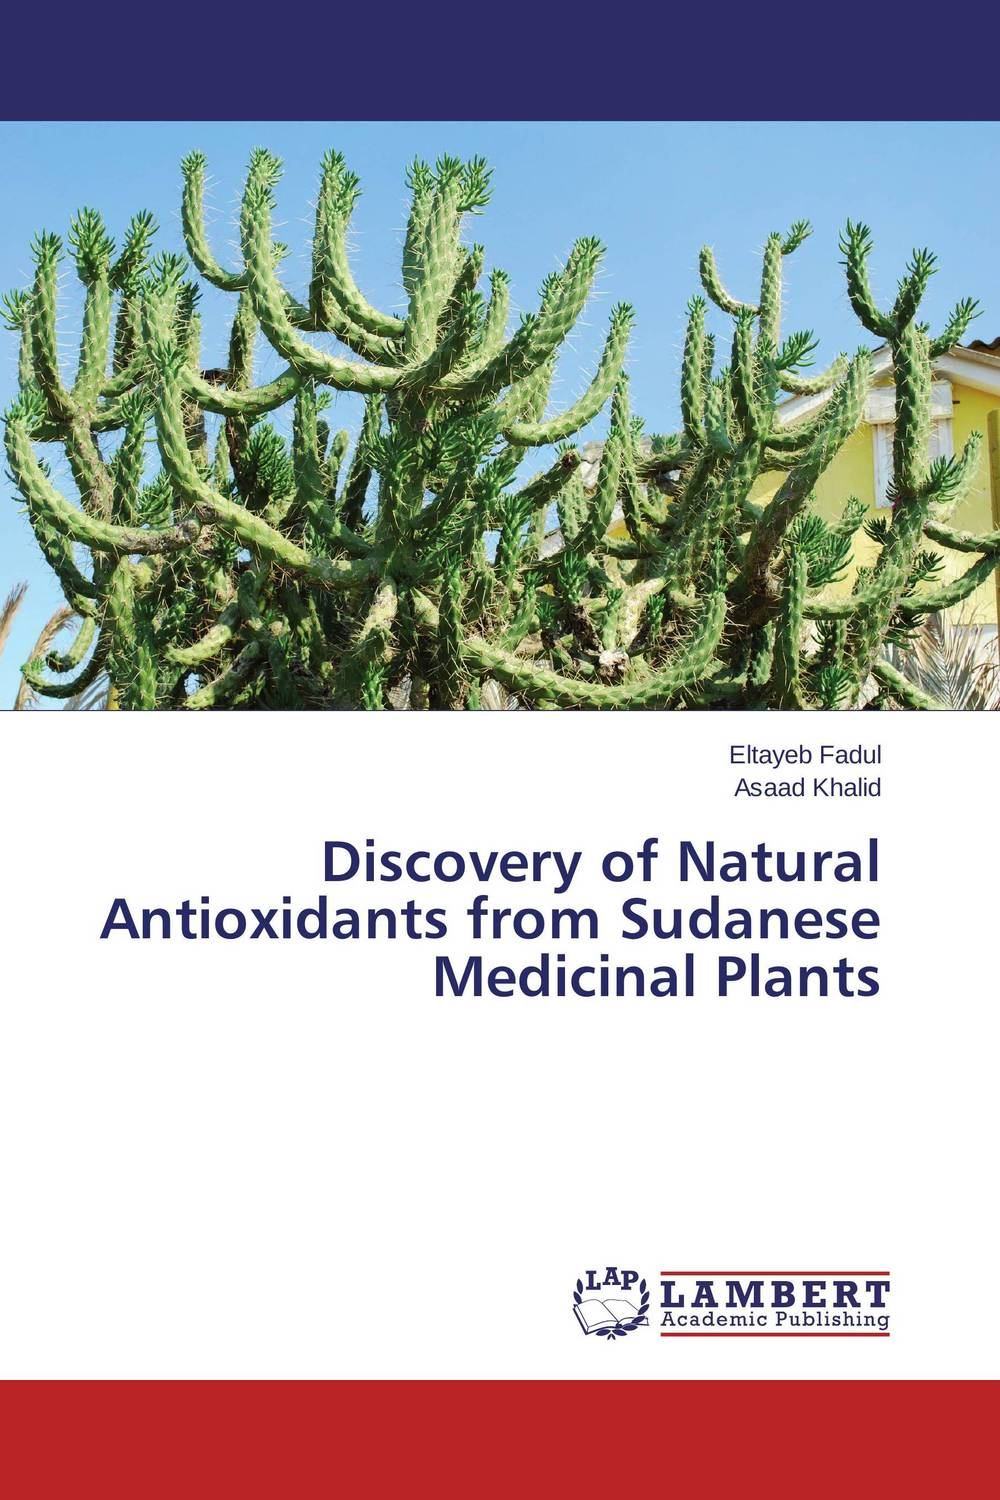 Discovery of Natural Antioxidants from Sudanese Medicinal Plants